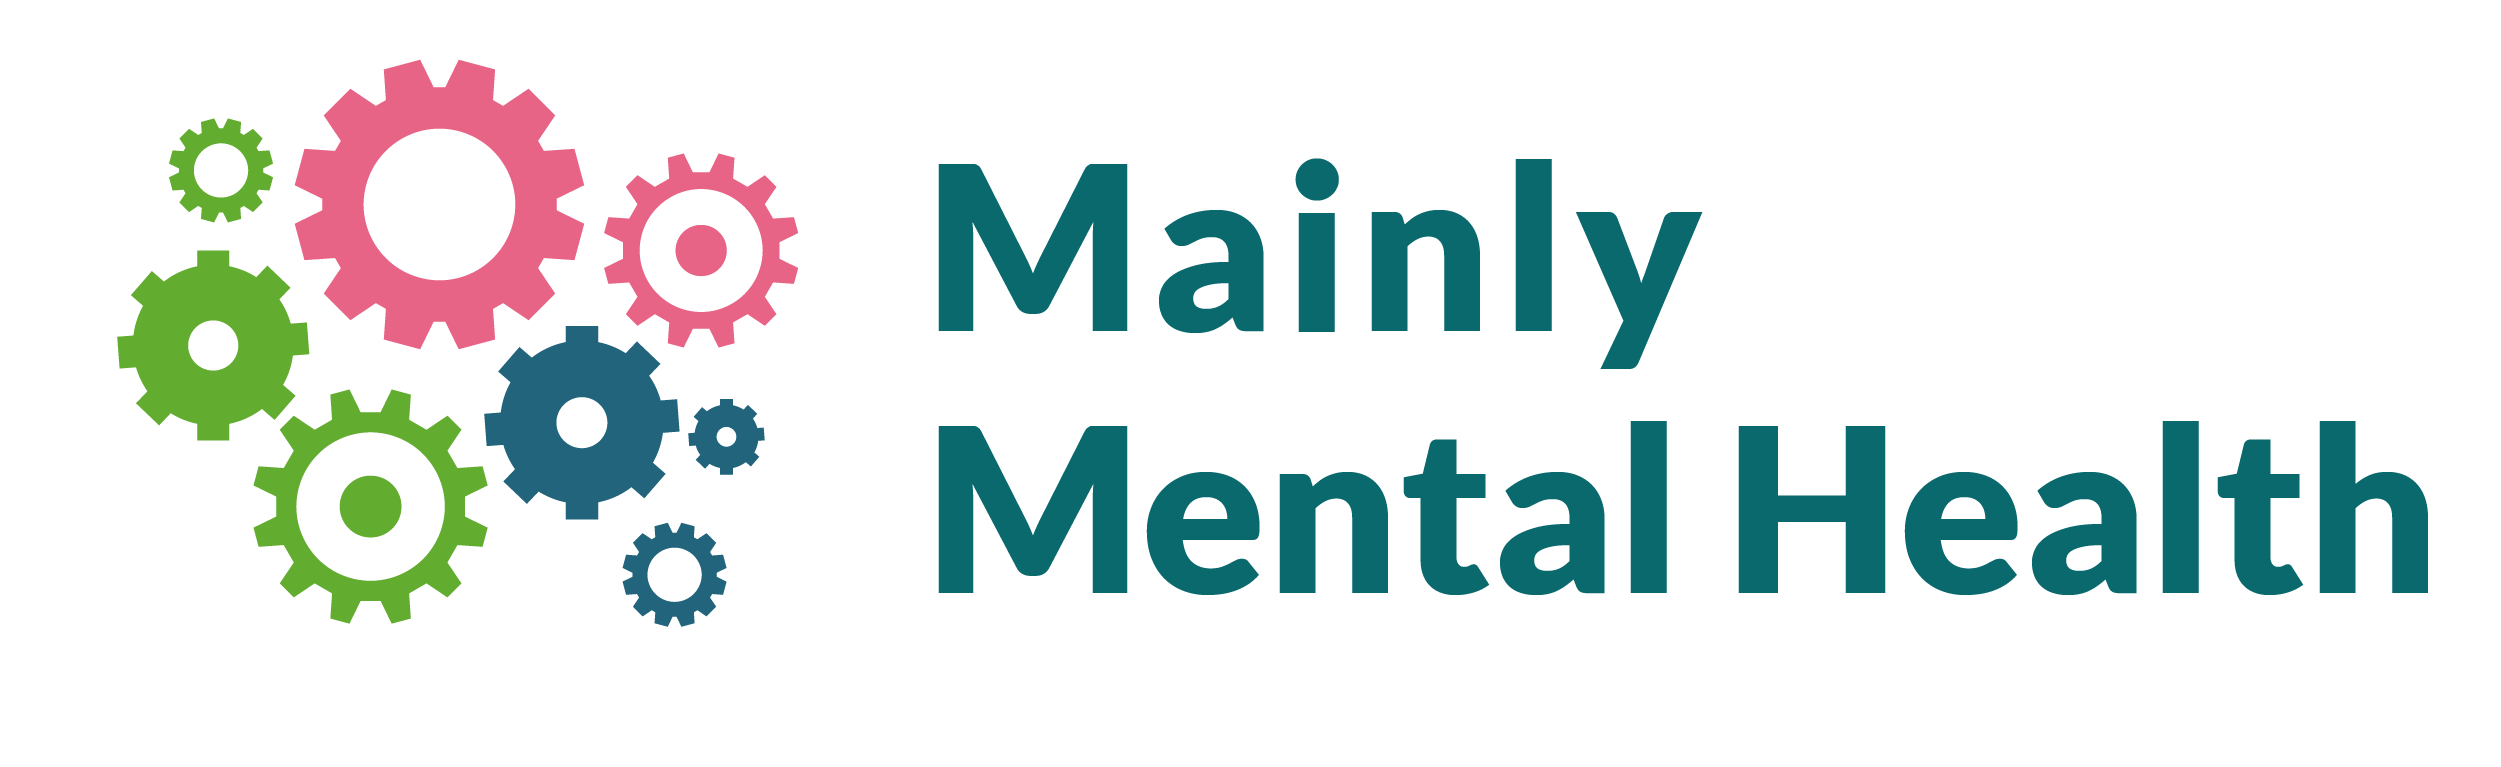 Mainly Mental Health